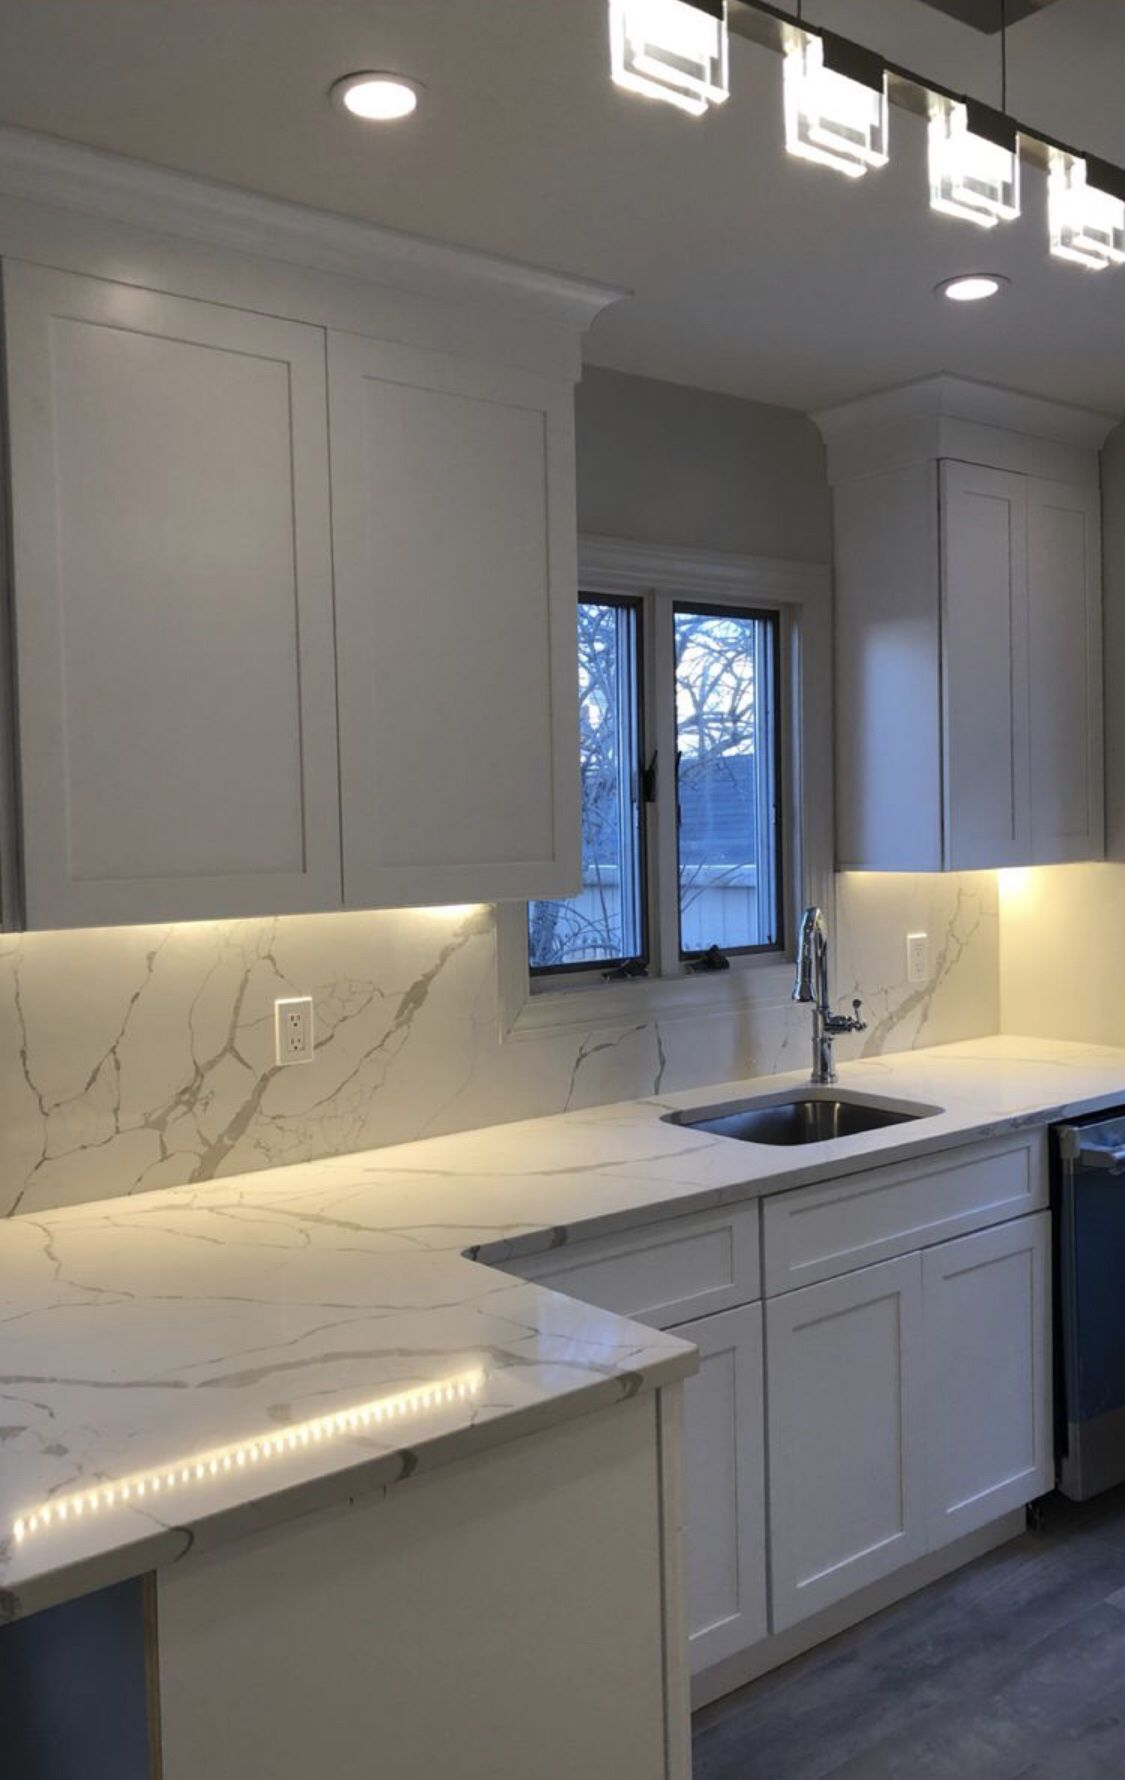 White Shaker Cabinetry With Marble Look Quartz Countertops And Full Height Backsplashes Kitchen Remodel Small Quartz Countertops Countertops